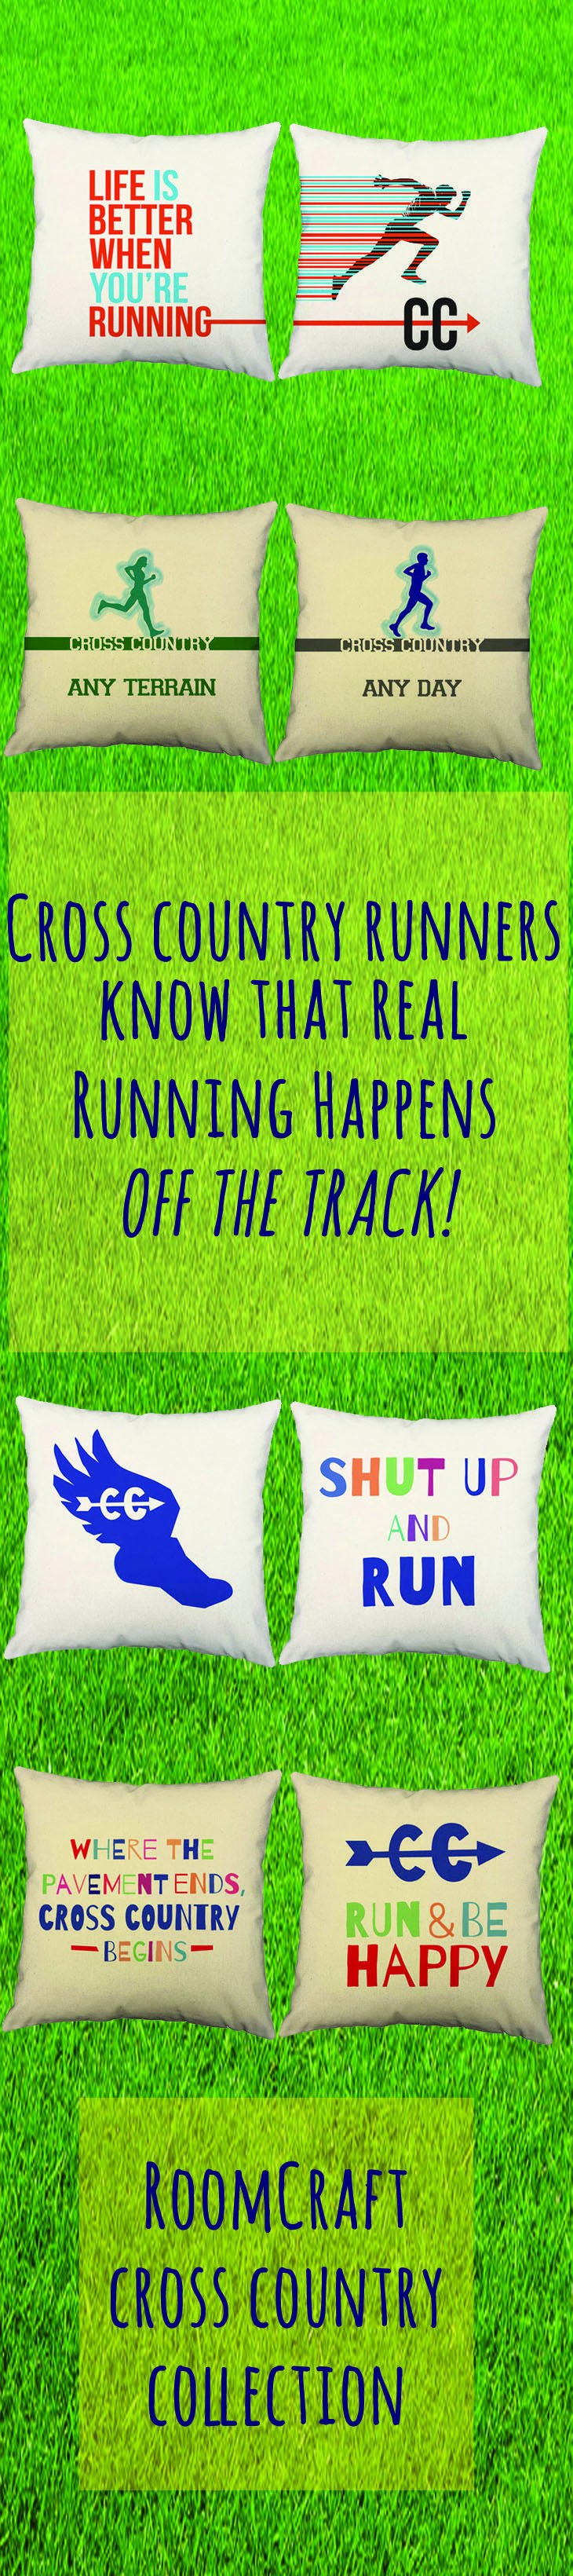 Fun, original pillows for the Cross Country enthusiast! Perfect gifts for coaches or teammates